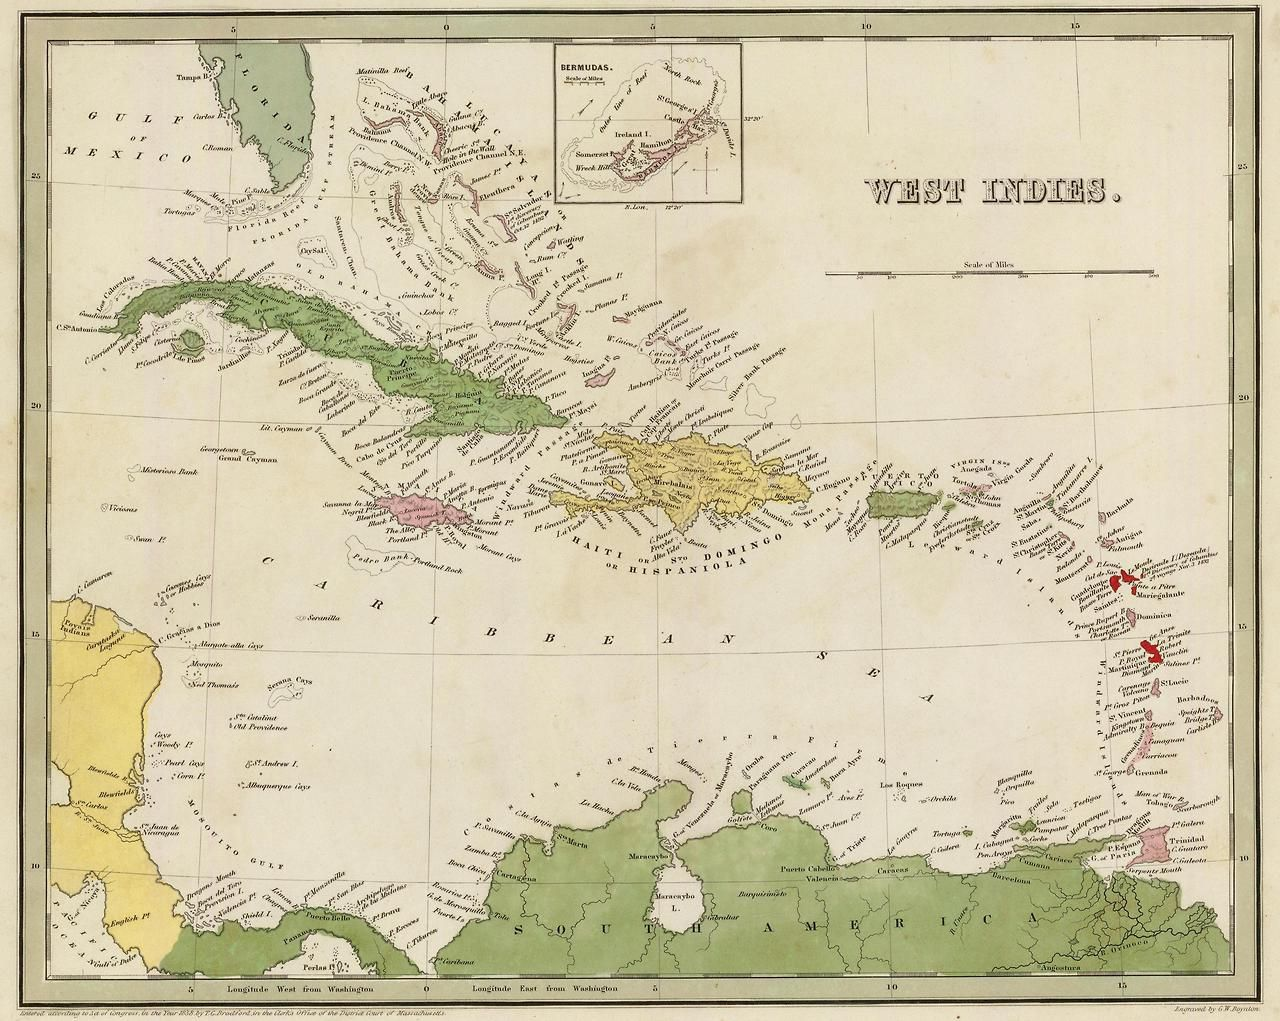 the west indies | Cartography | Pinterest | West indies, Caribbean ...